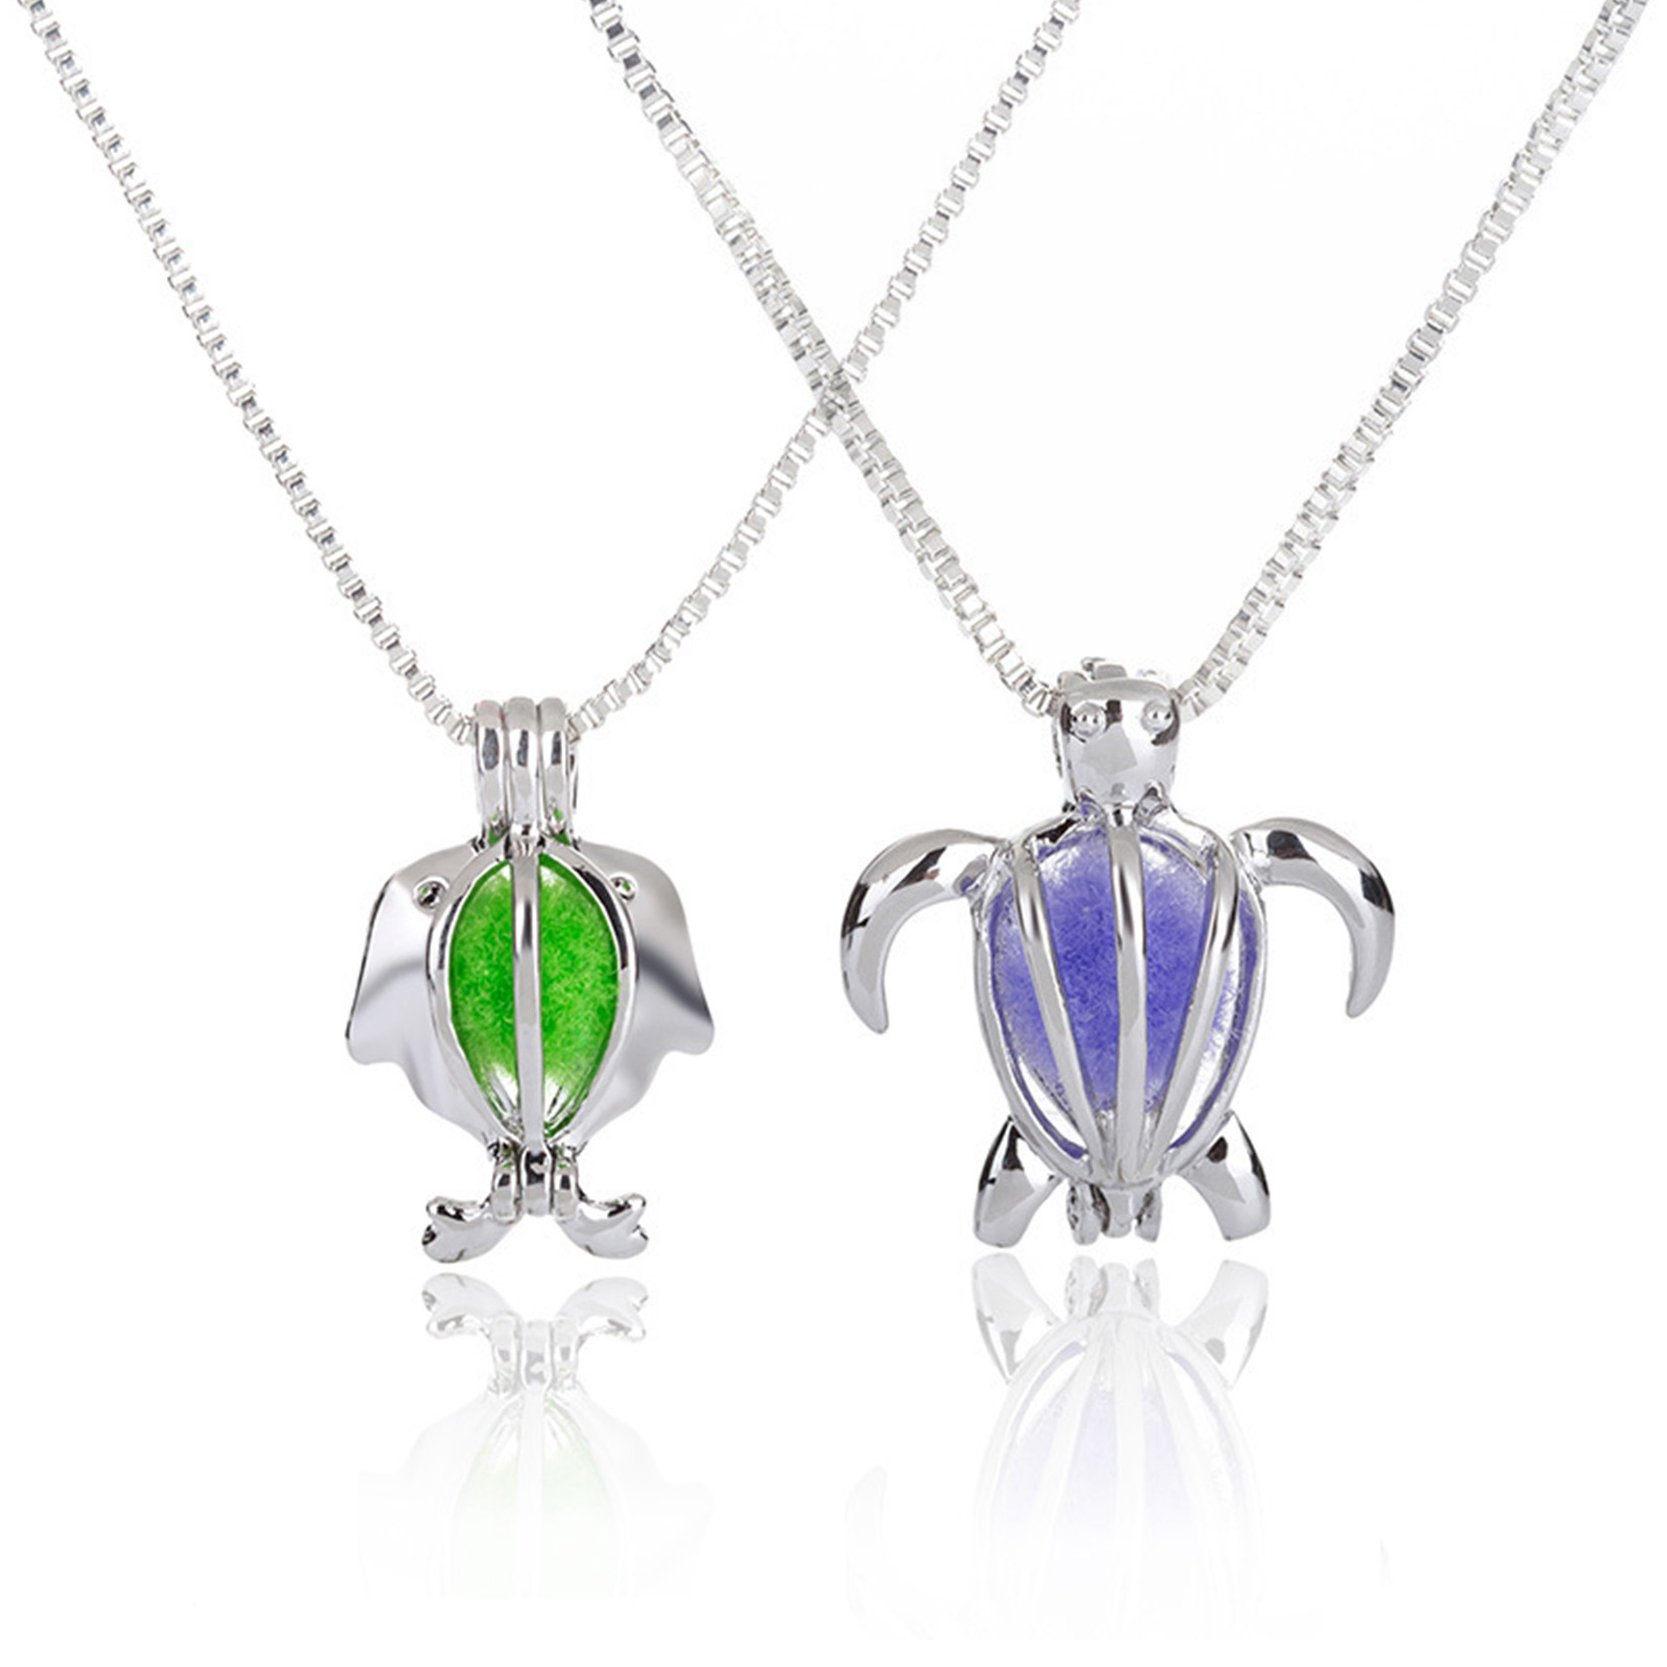 OBSEDE Silver Color Turtle Whale Essential Oil Diffuser Chain Necklace for Women Girls 2pcs